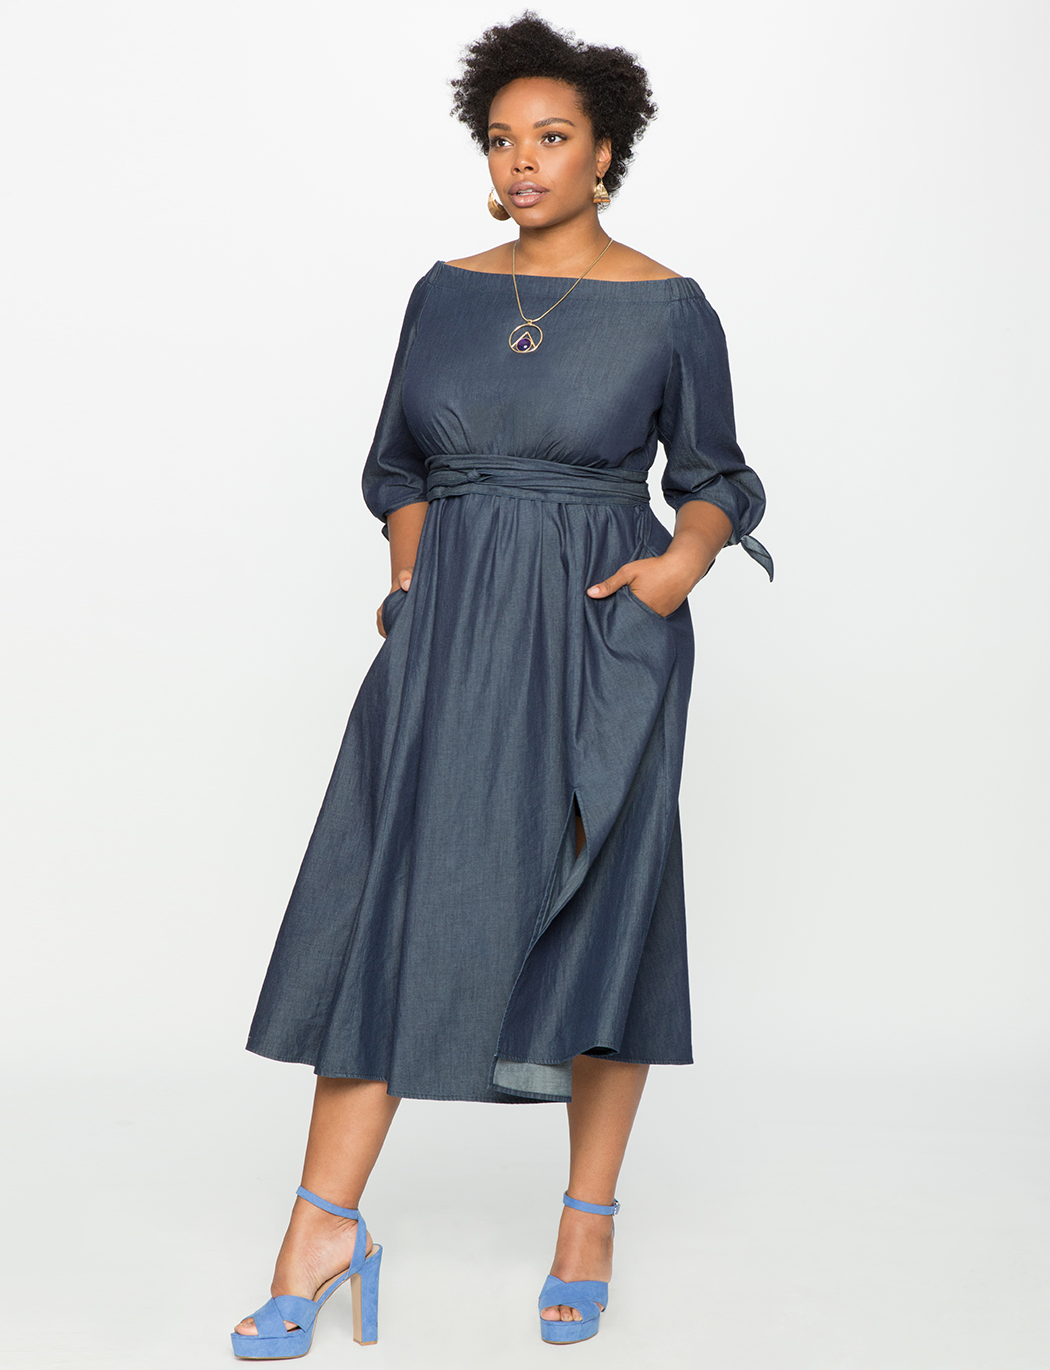 0db7f3ace40 Studio Off the Shoulder Chambray Dress